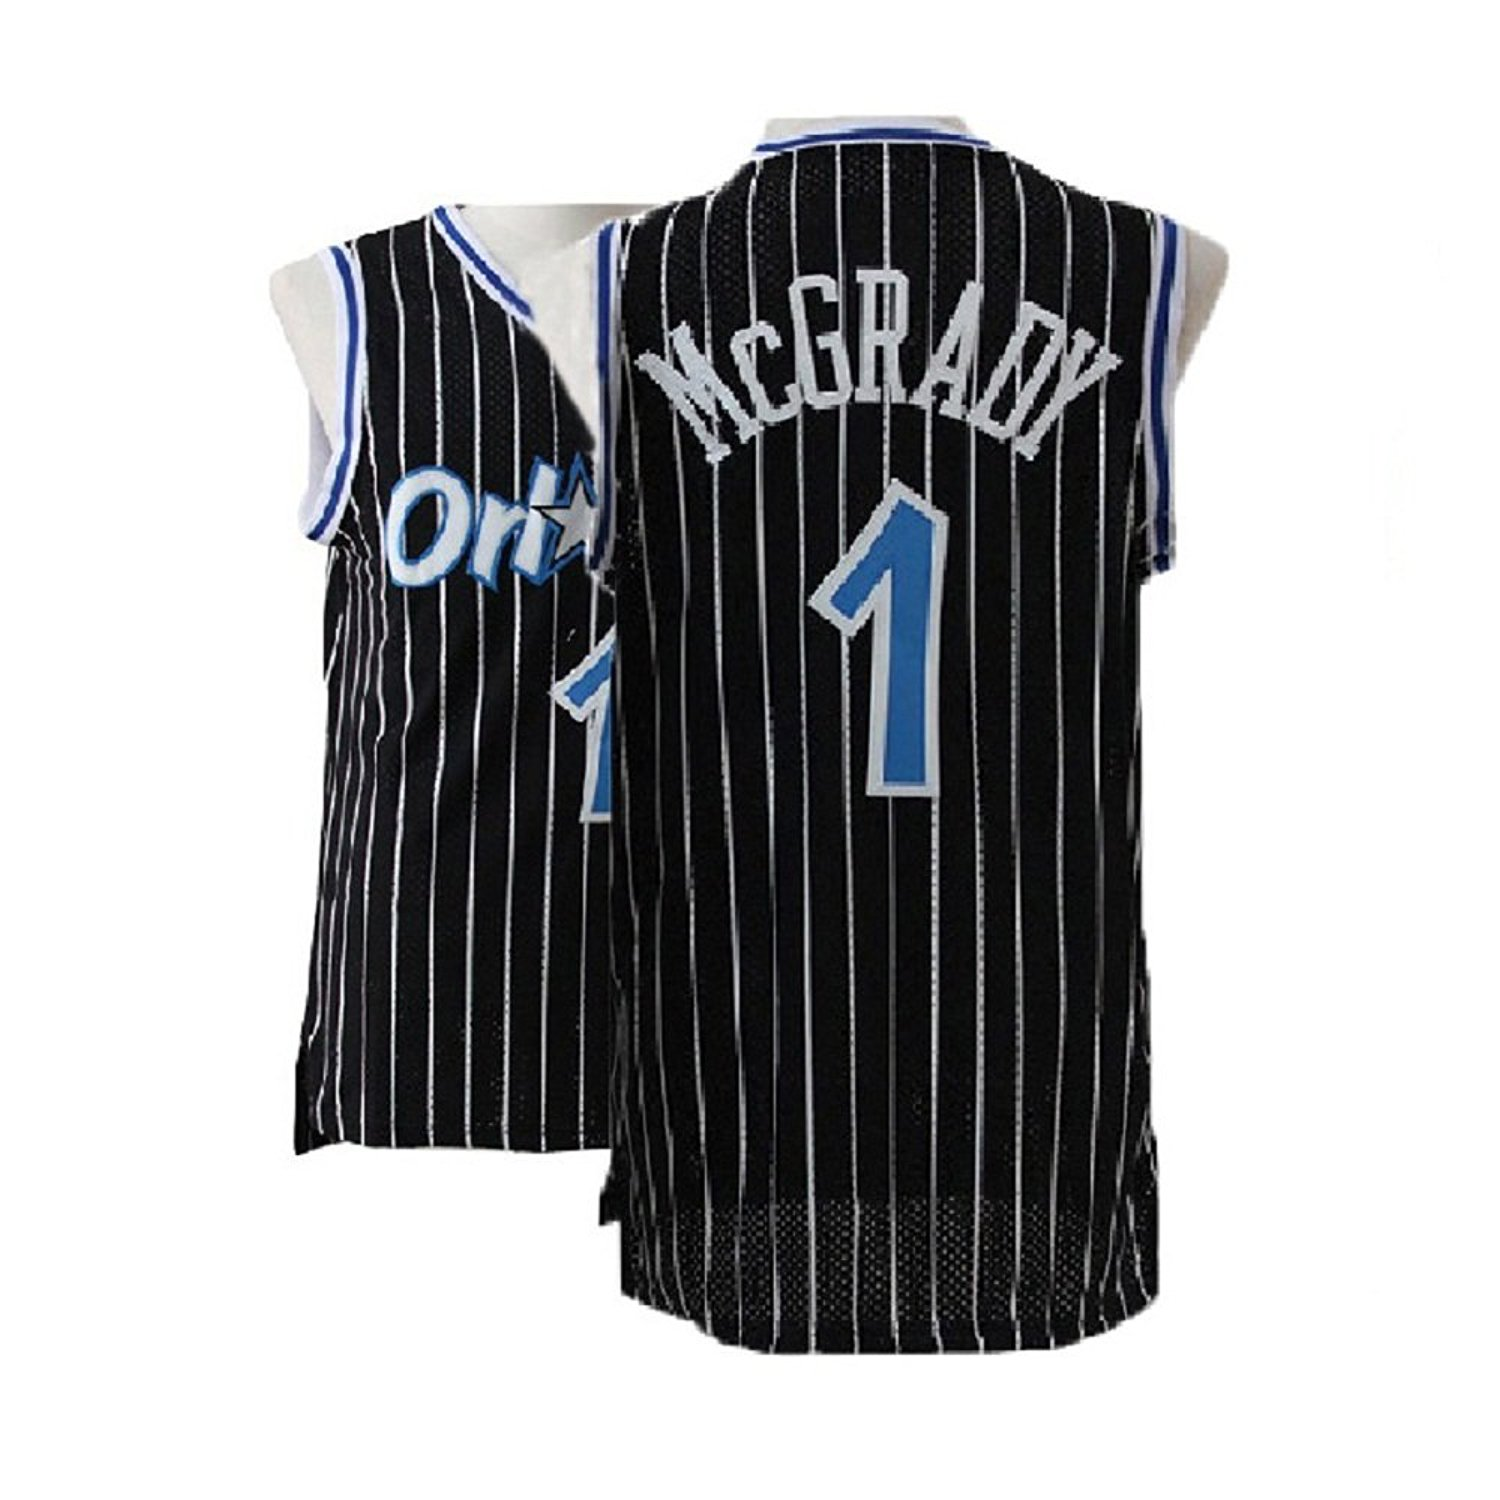 Retro Jerseys Cheap Basketball Retro Jersey Find Basketball Retro Jersey Deals